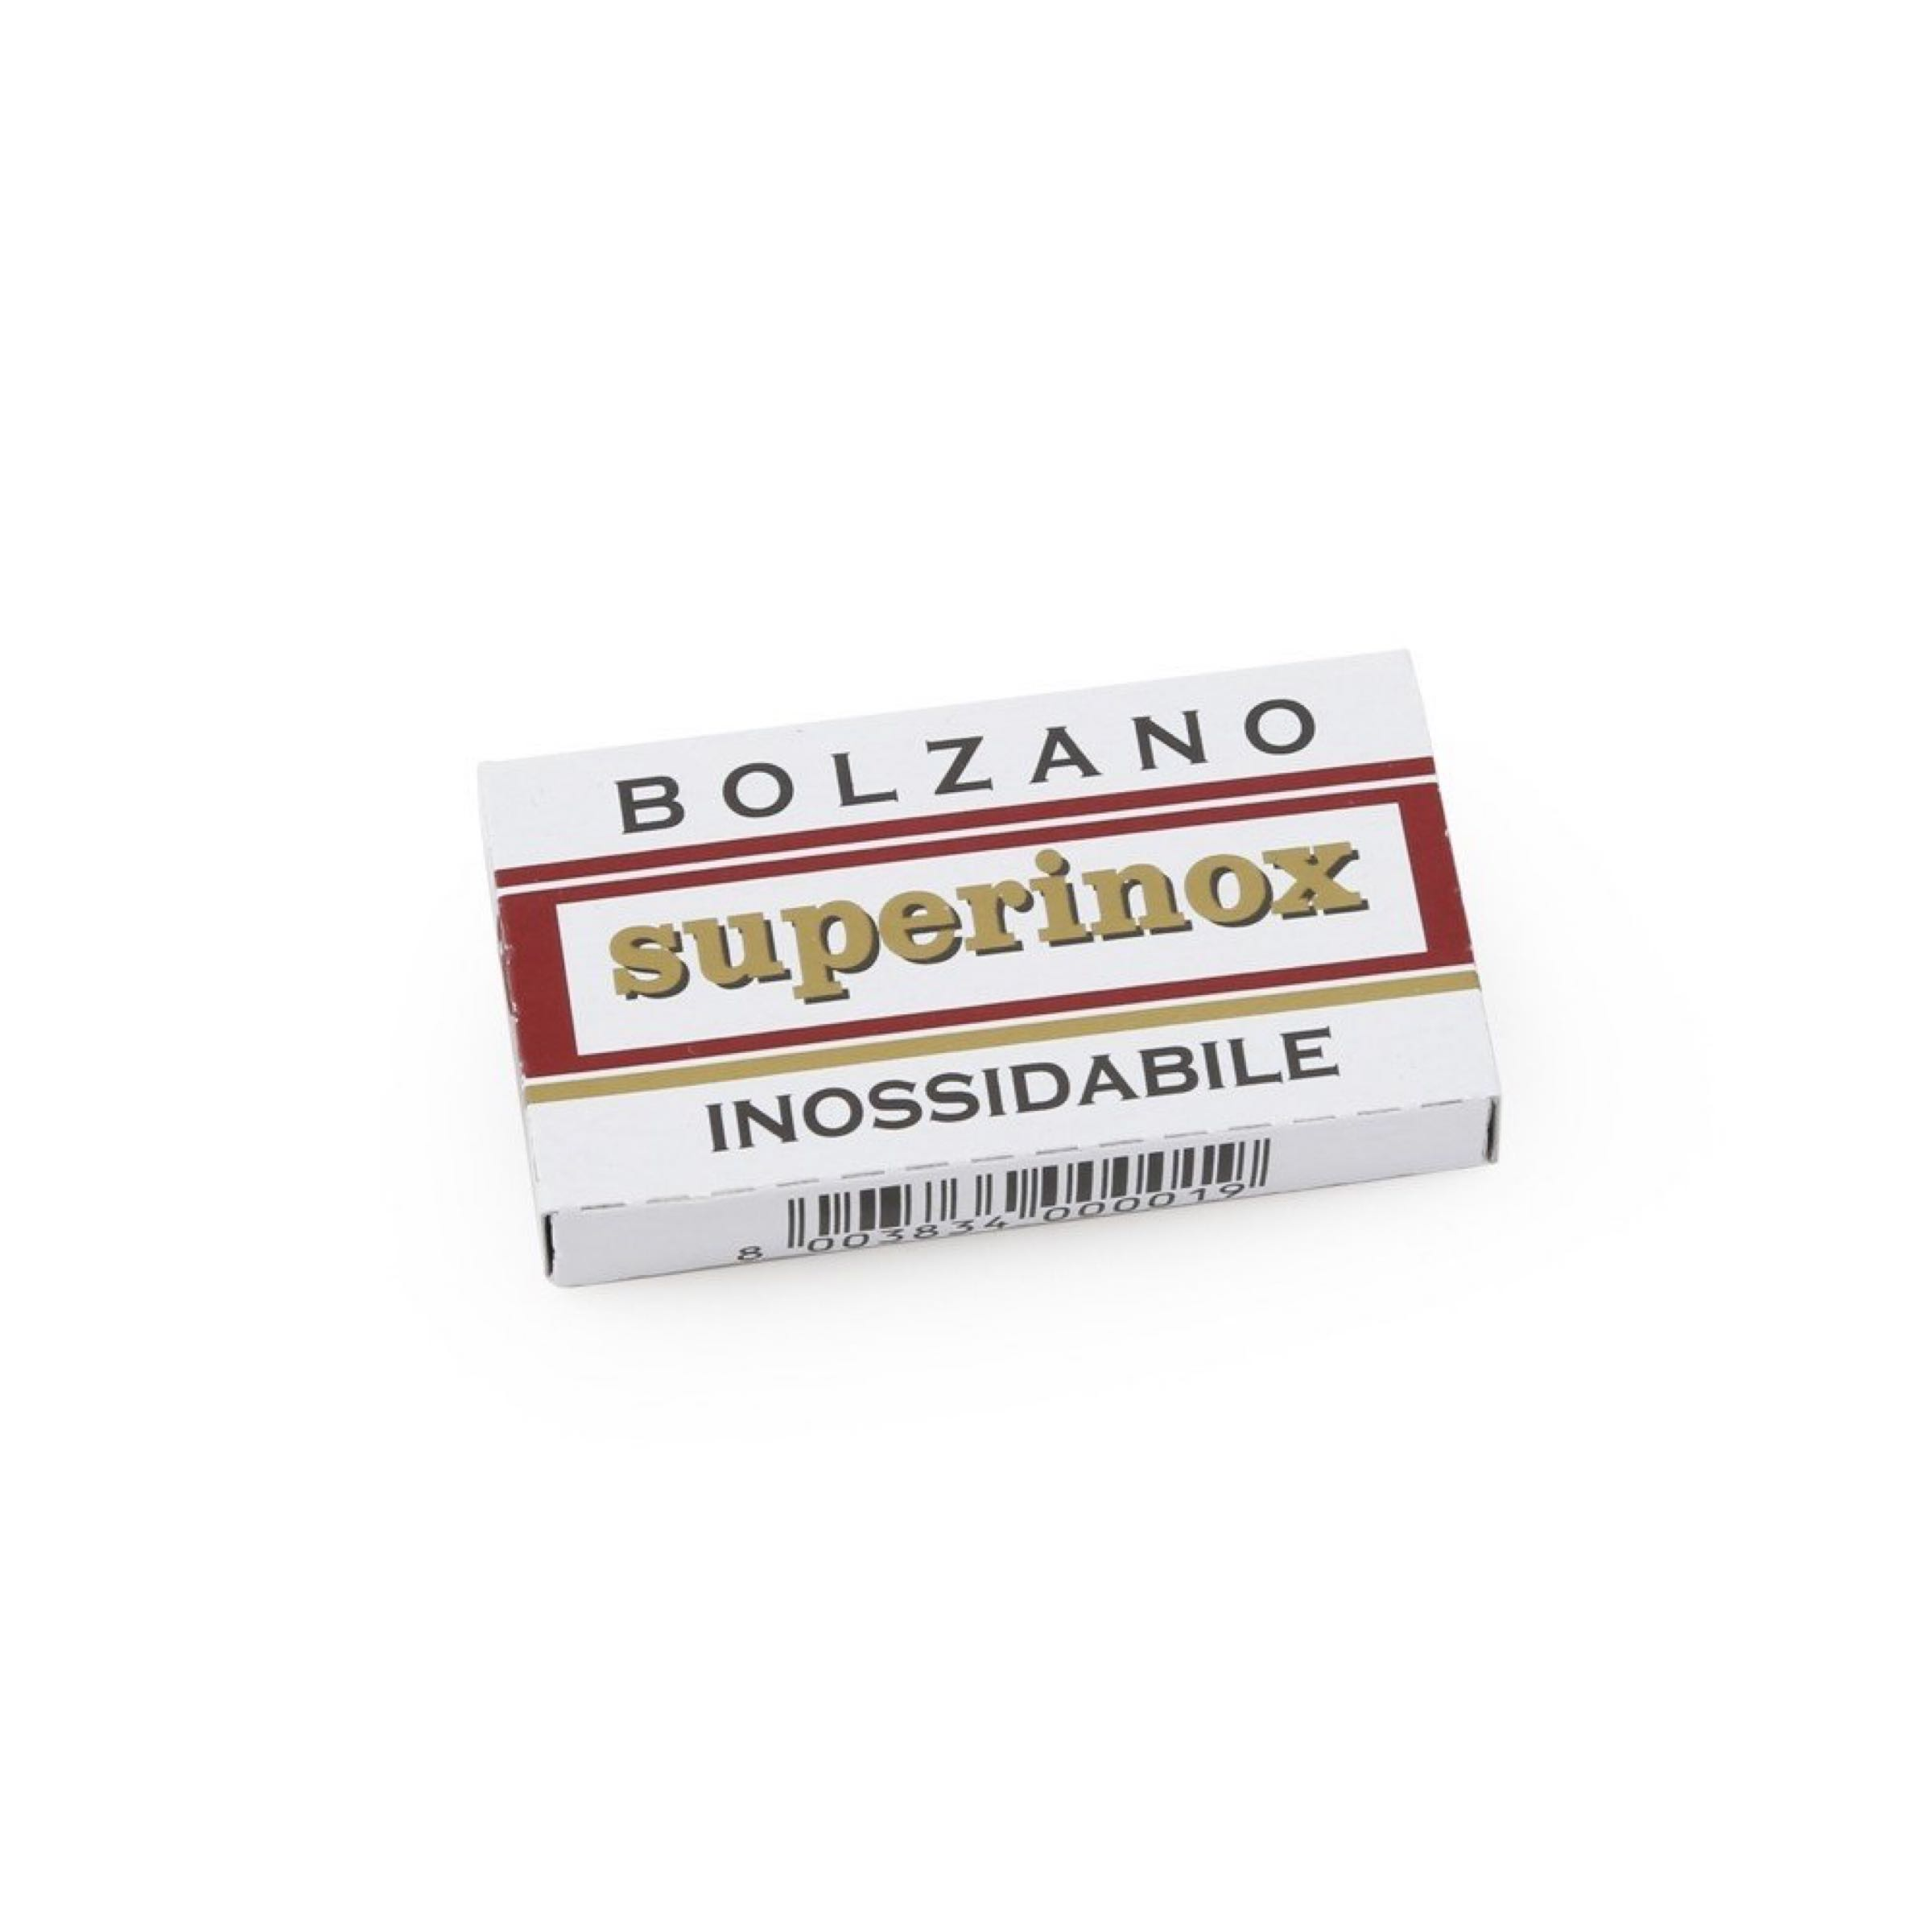 Bolzano Superinox Stainless Steel Double Edge Razor Blades Pack of 5